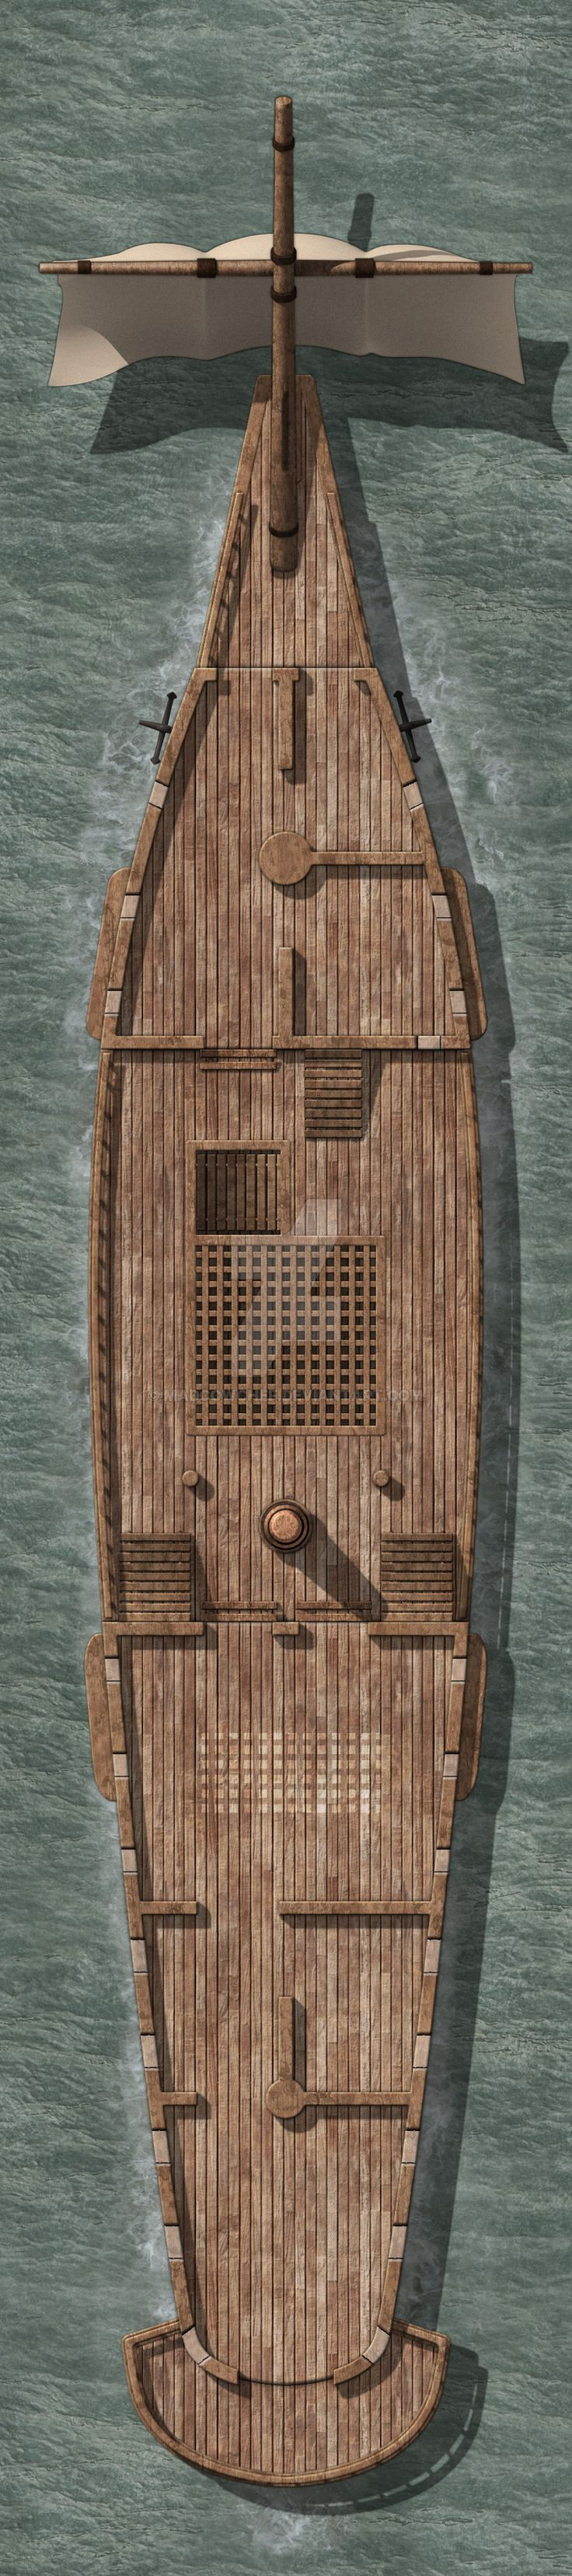 Galleon Small 2 Main Deck by Madcowchef